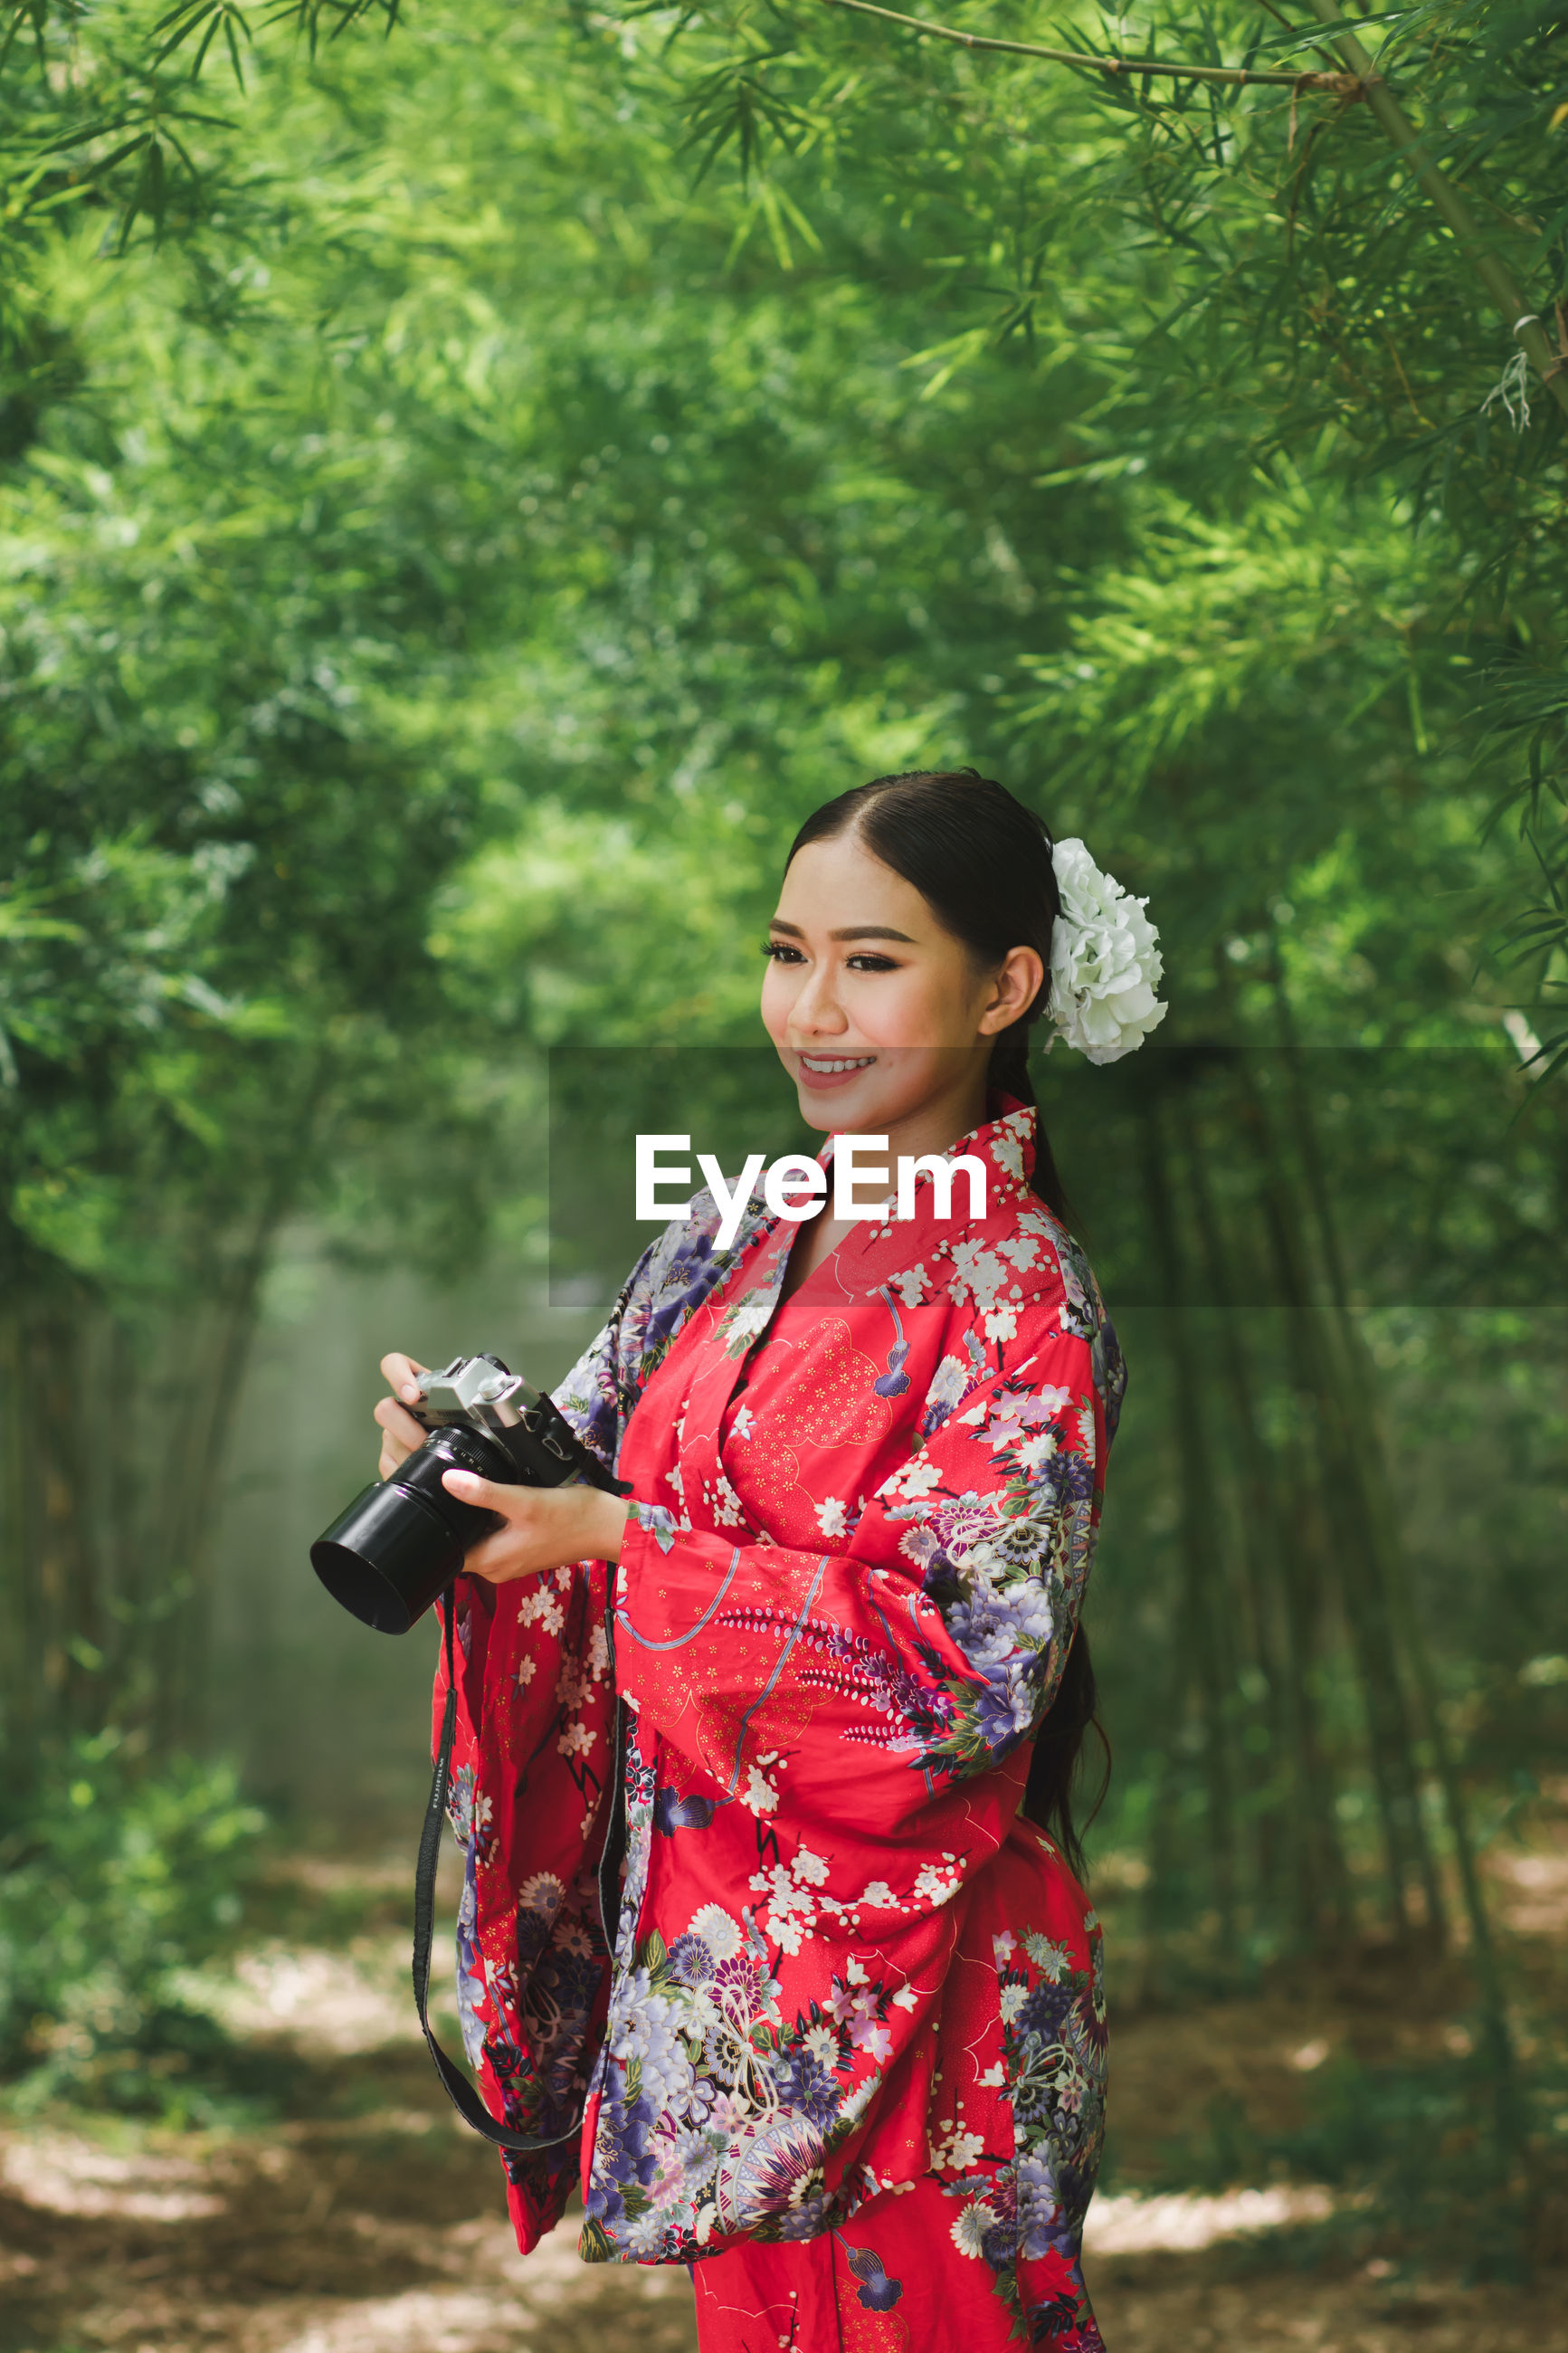 Smiling young woman wearing kimono holding digital camera in forest